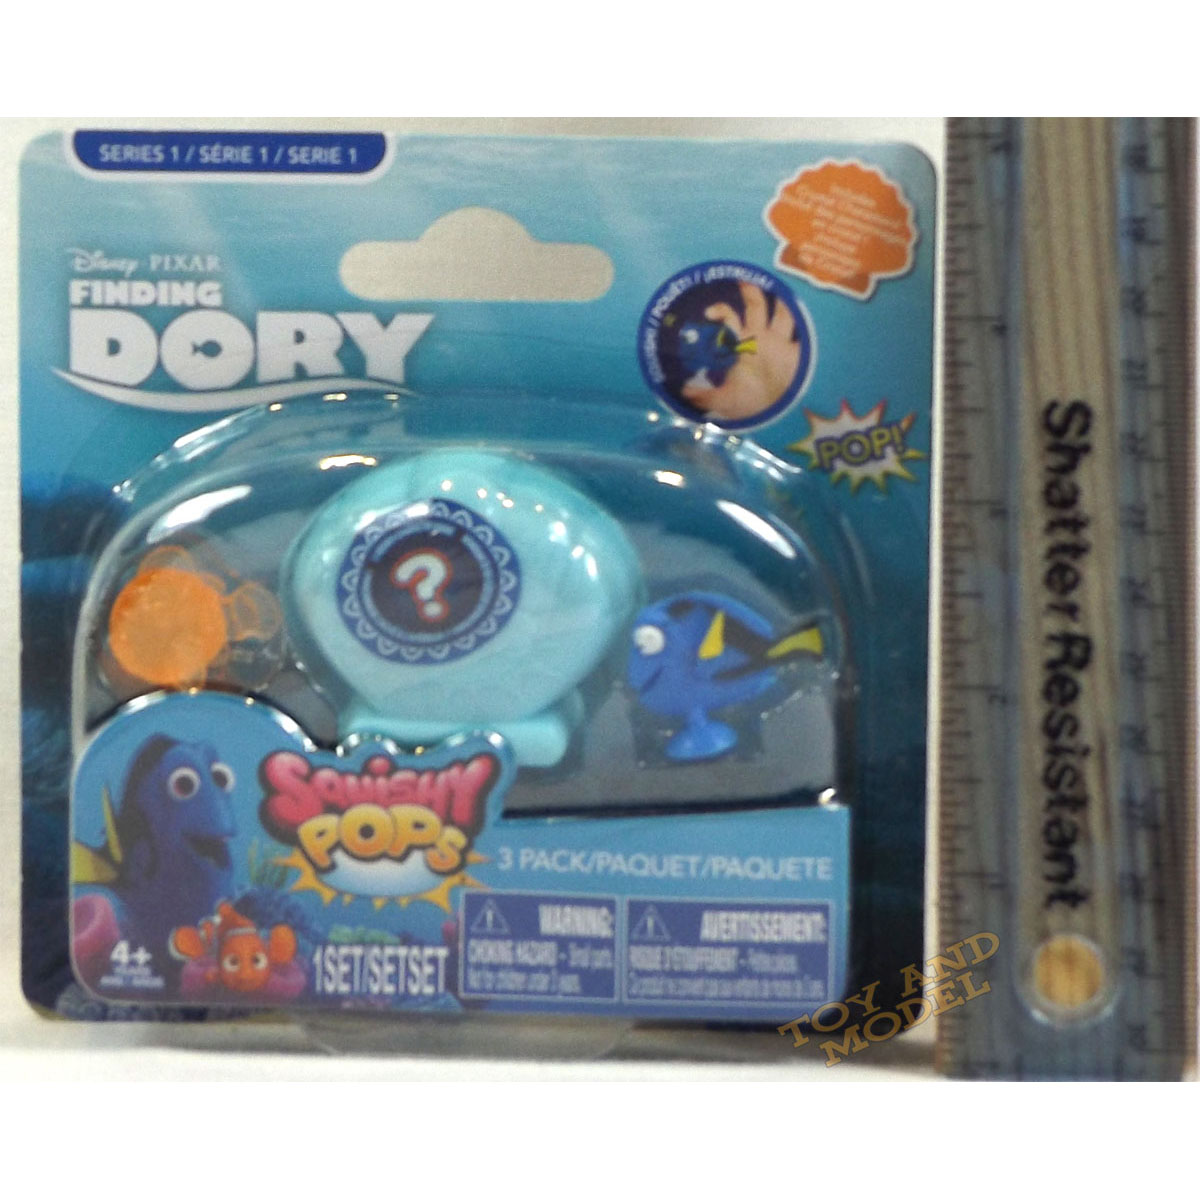 Squishy Pops At Toys R Us : Finding Dory Squishy Pops 3 Pack on Card (includes 1 Shell) UK Seller 4 Yrs+NEW eBay